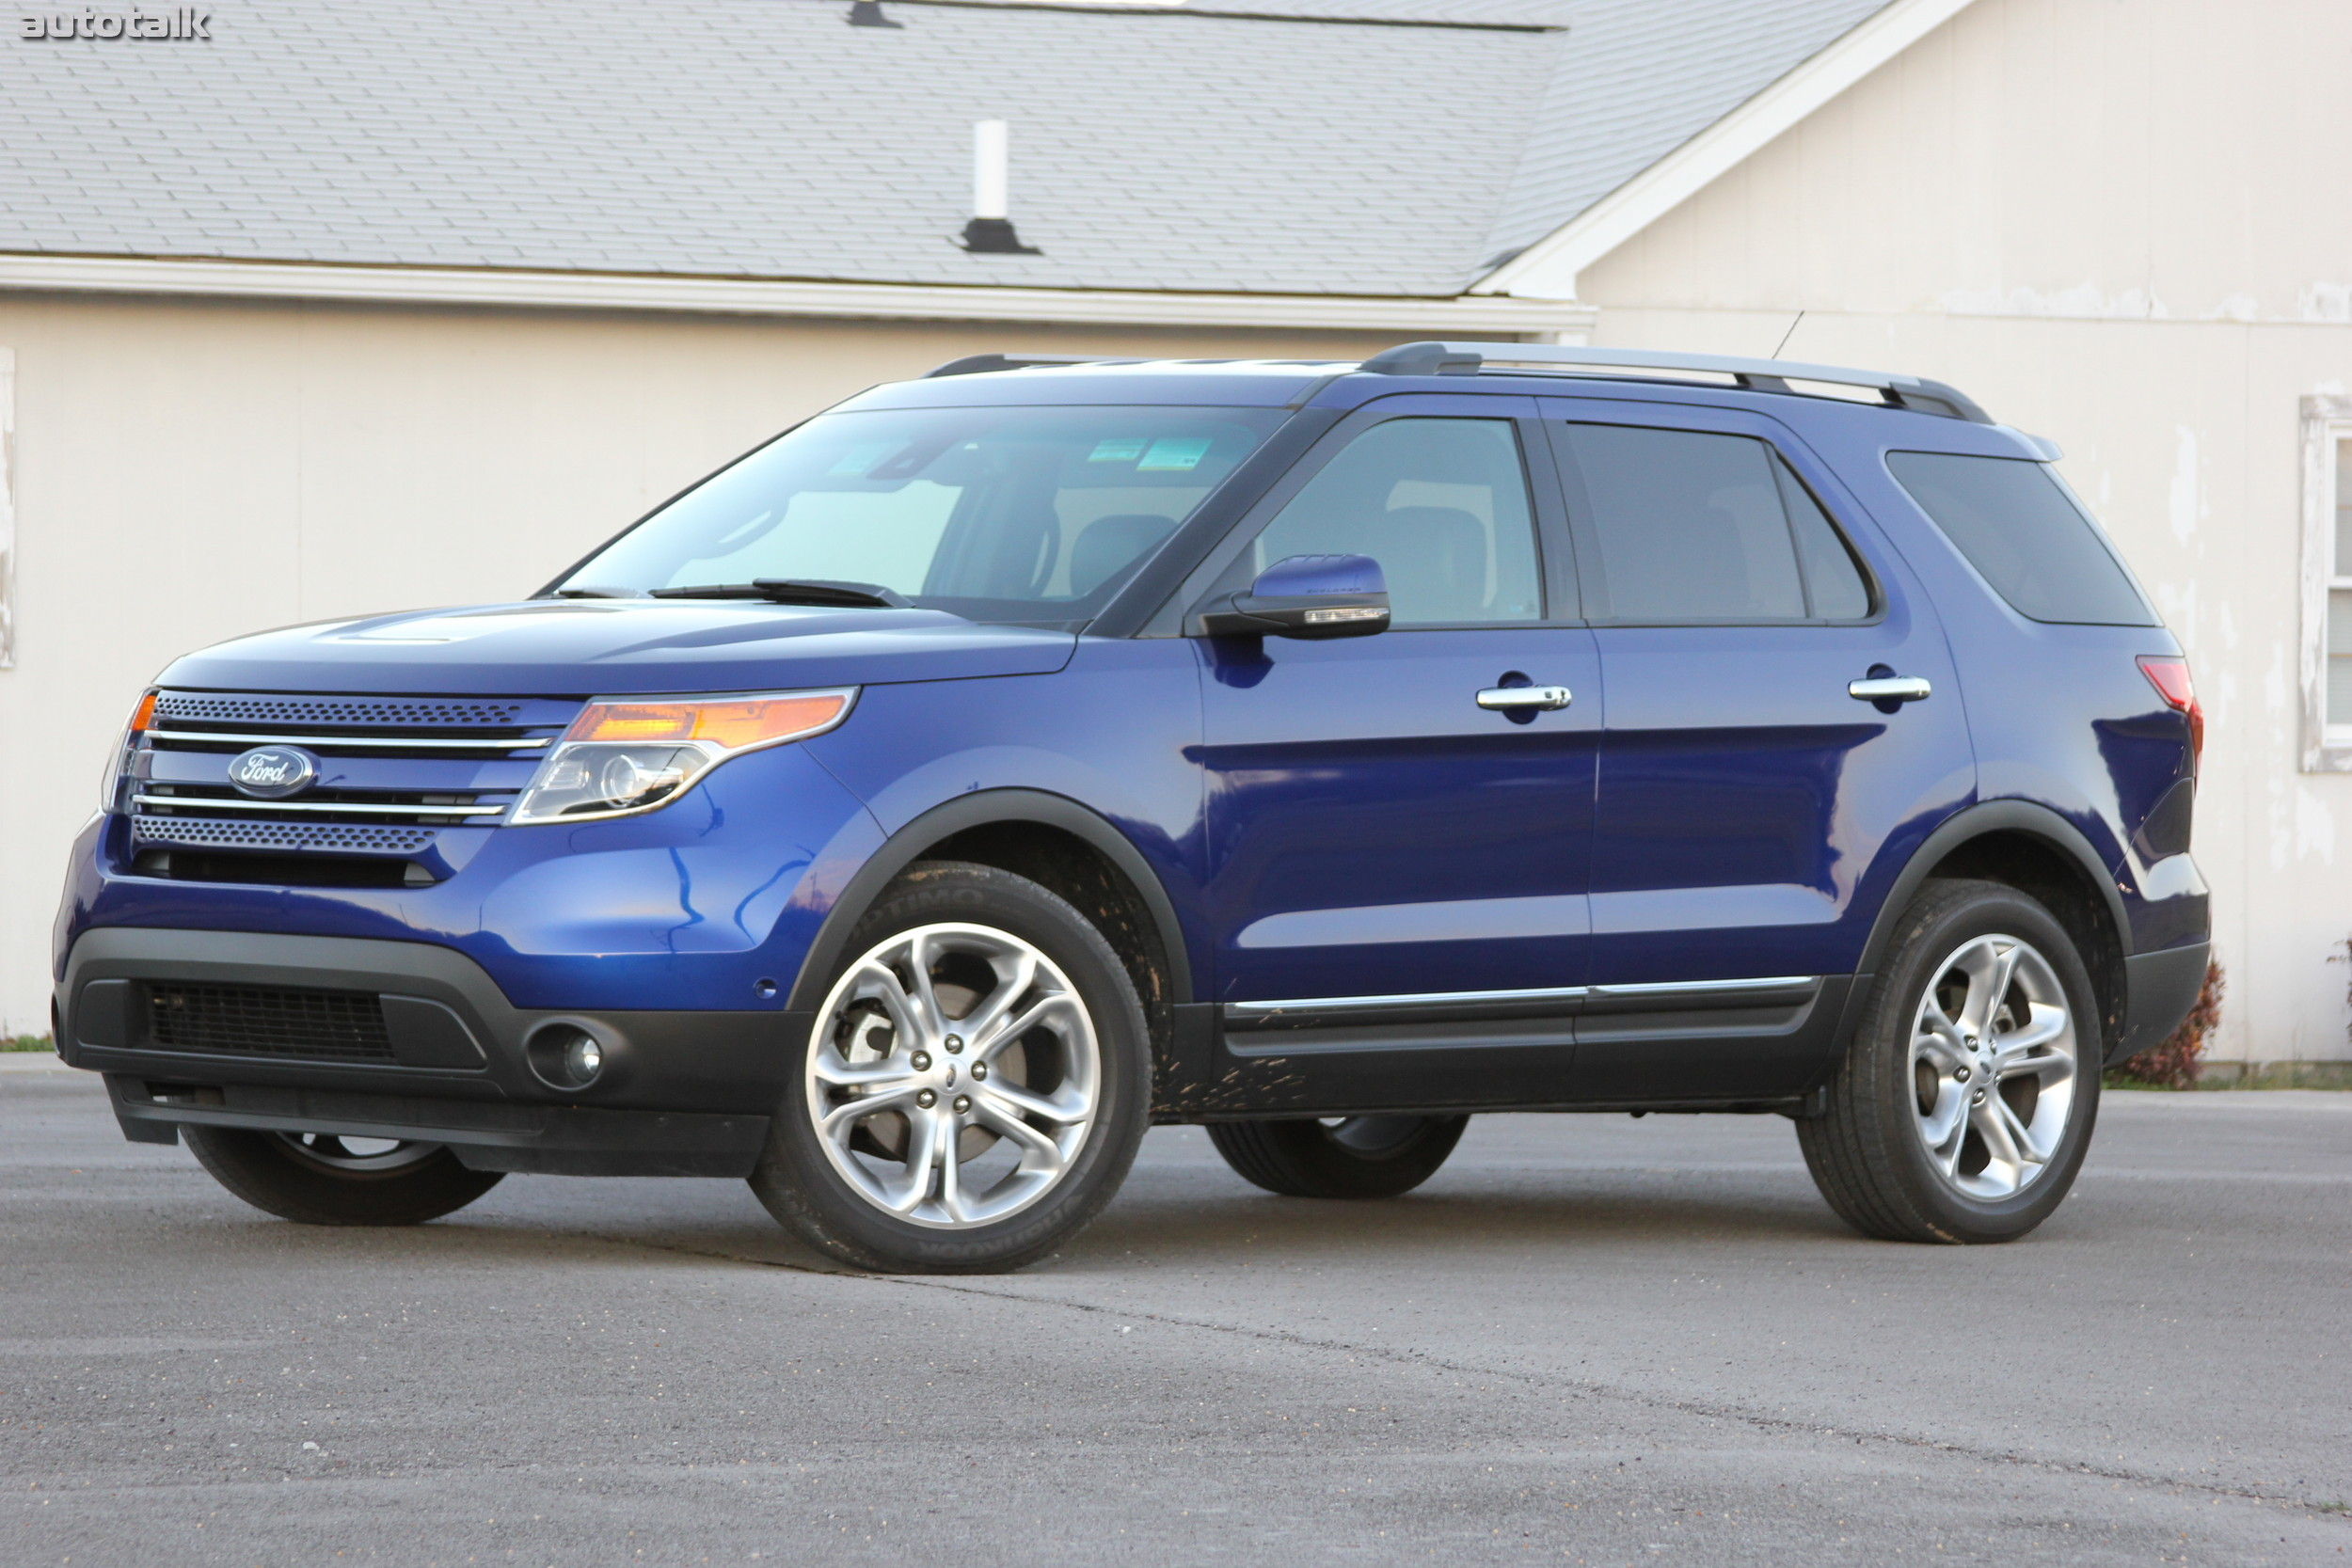 In the late 20th century the ford explorer